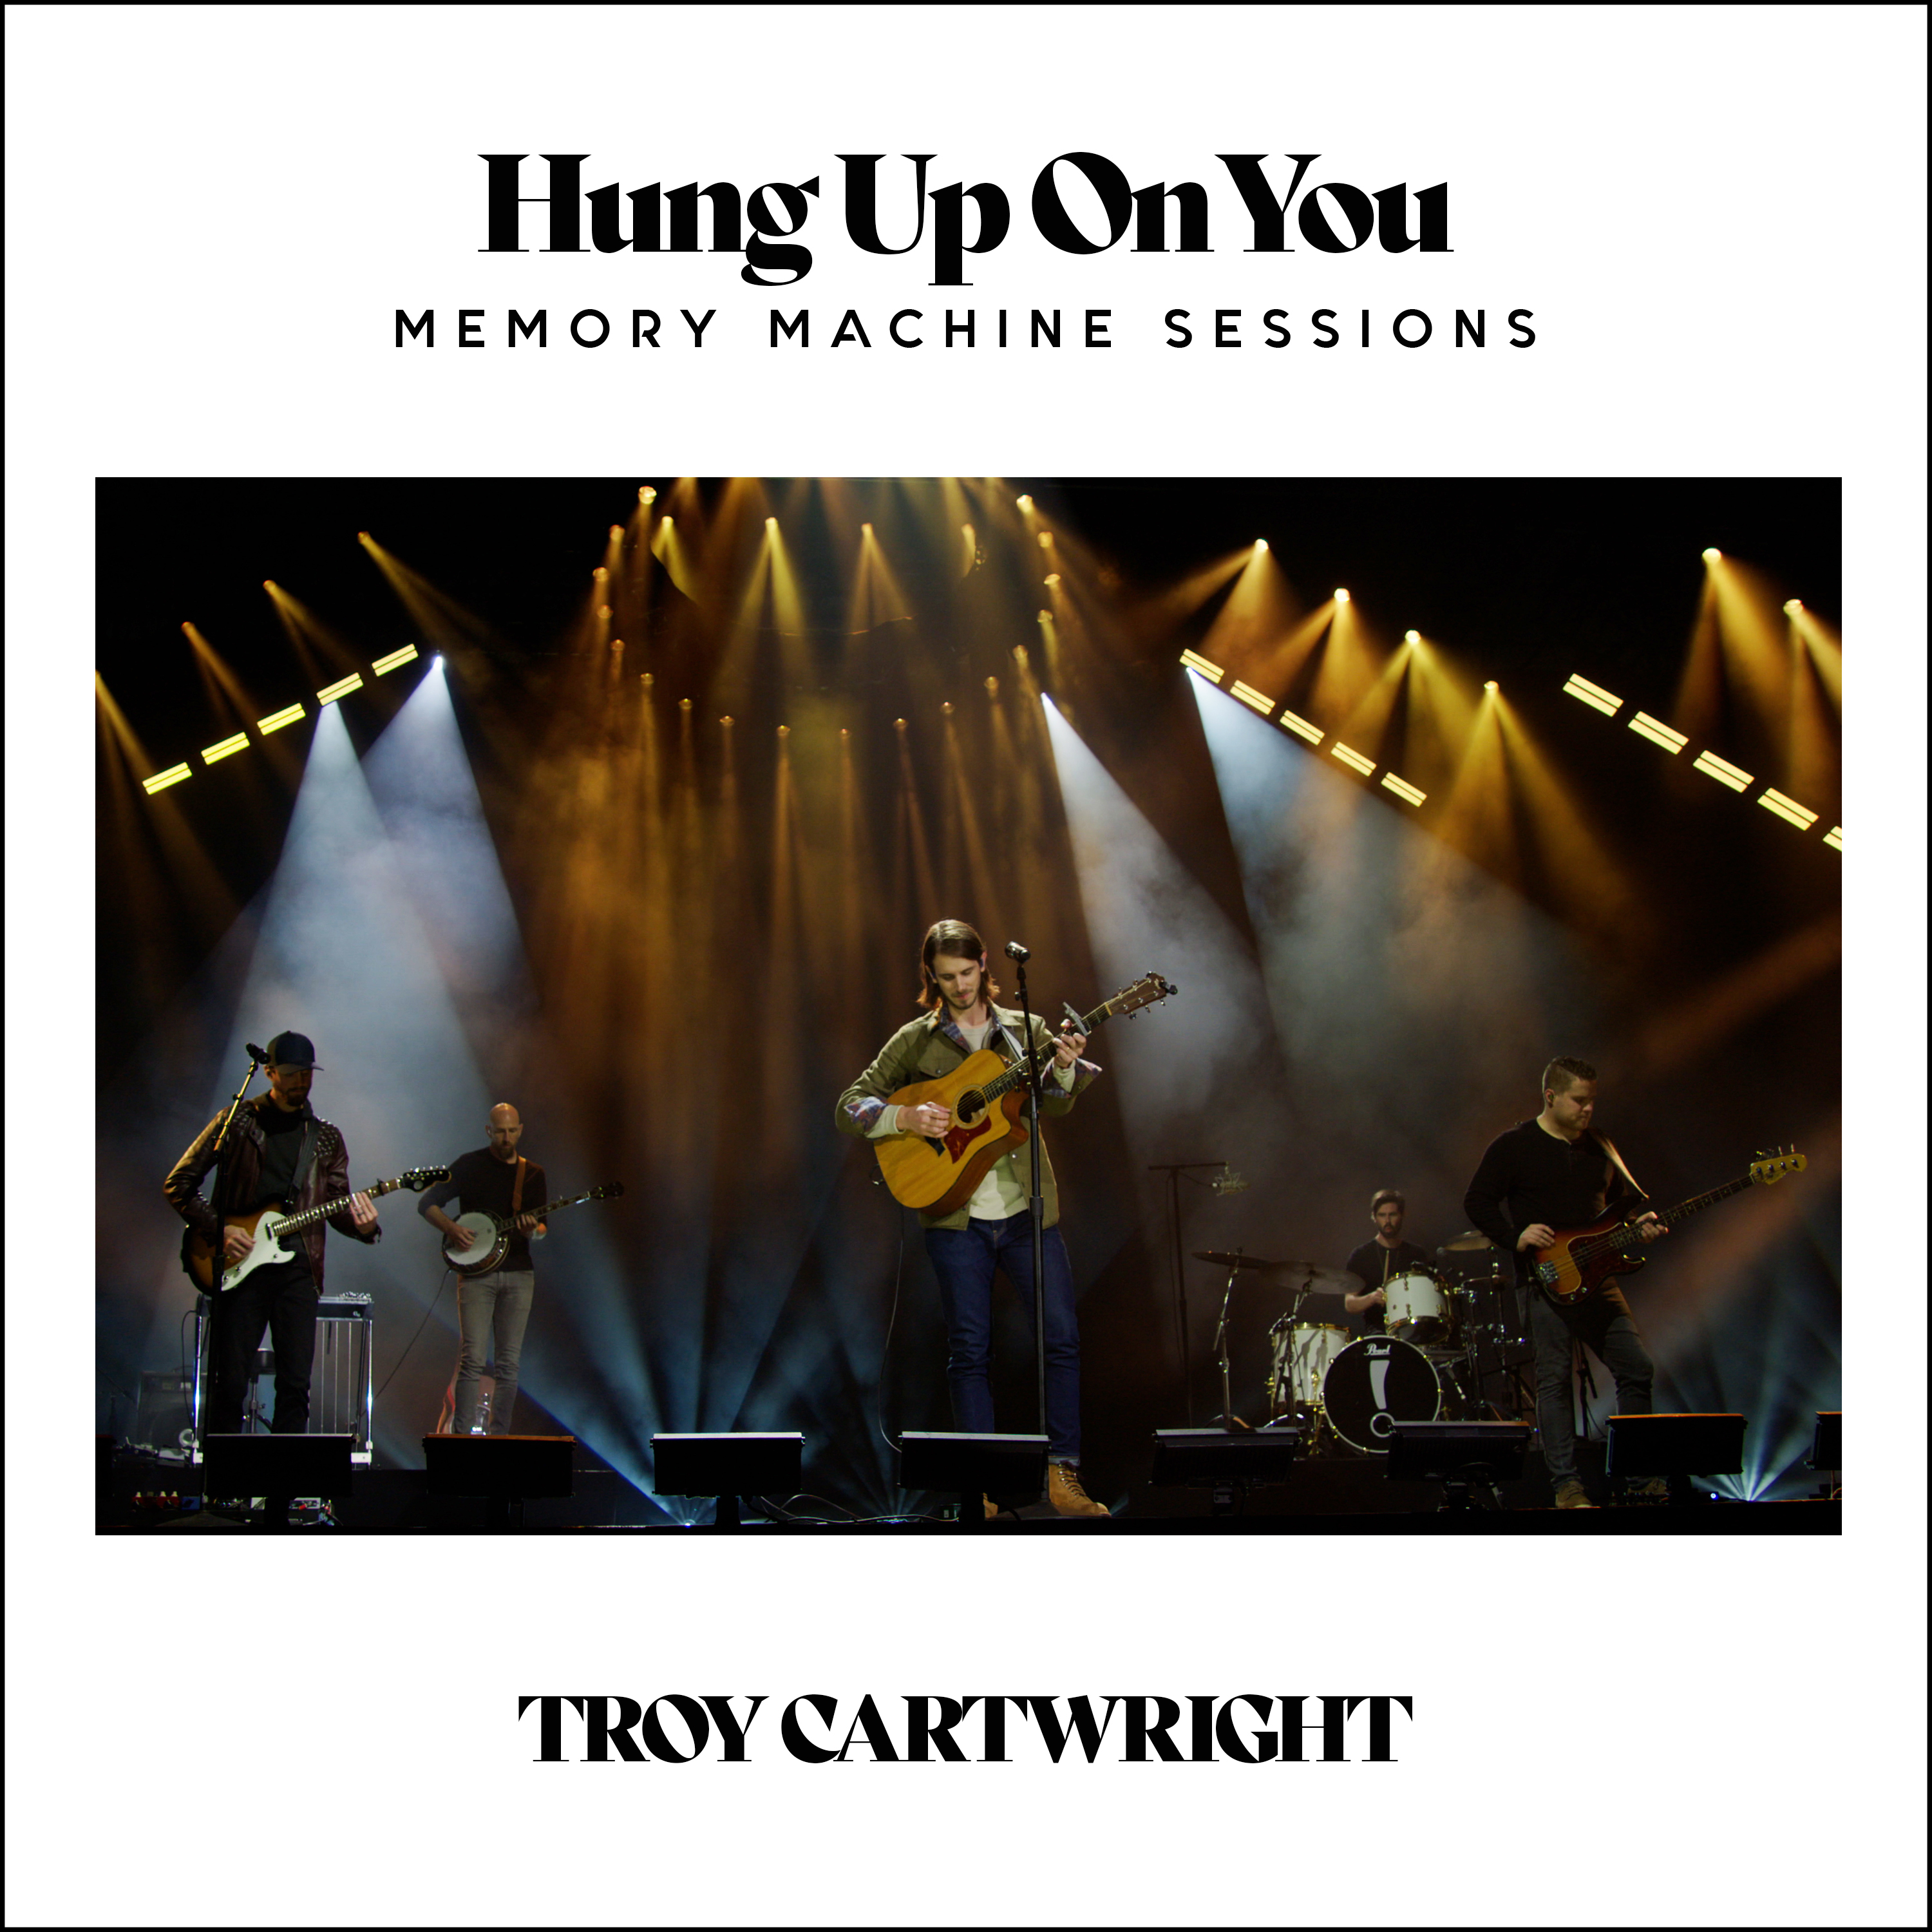 TROY CARTWRIGHT ANNOUNCES LIVE EP MEMORY MACHINE SESSIONS, SET TO RELEASE 5/21